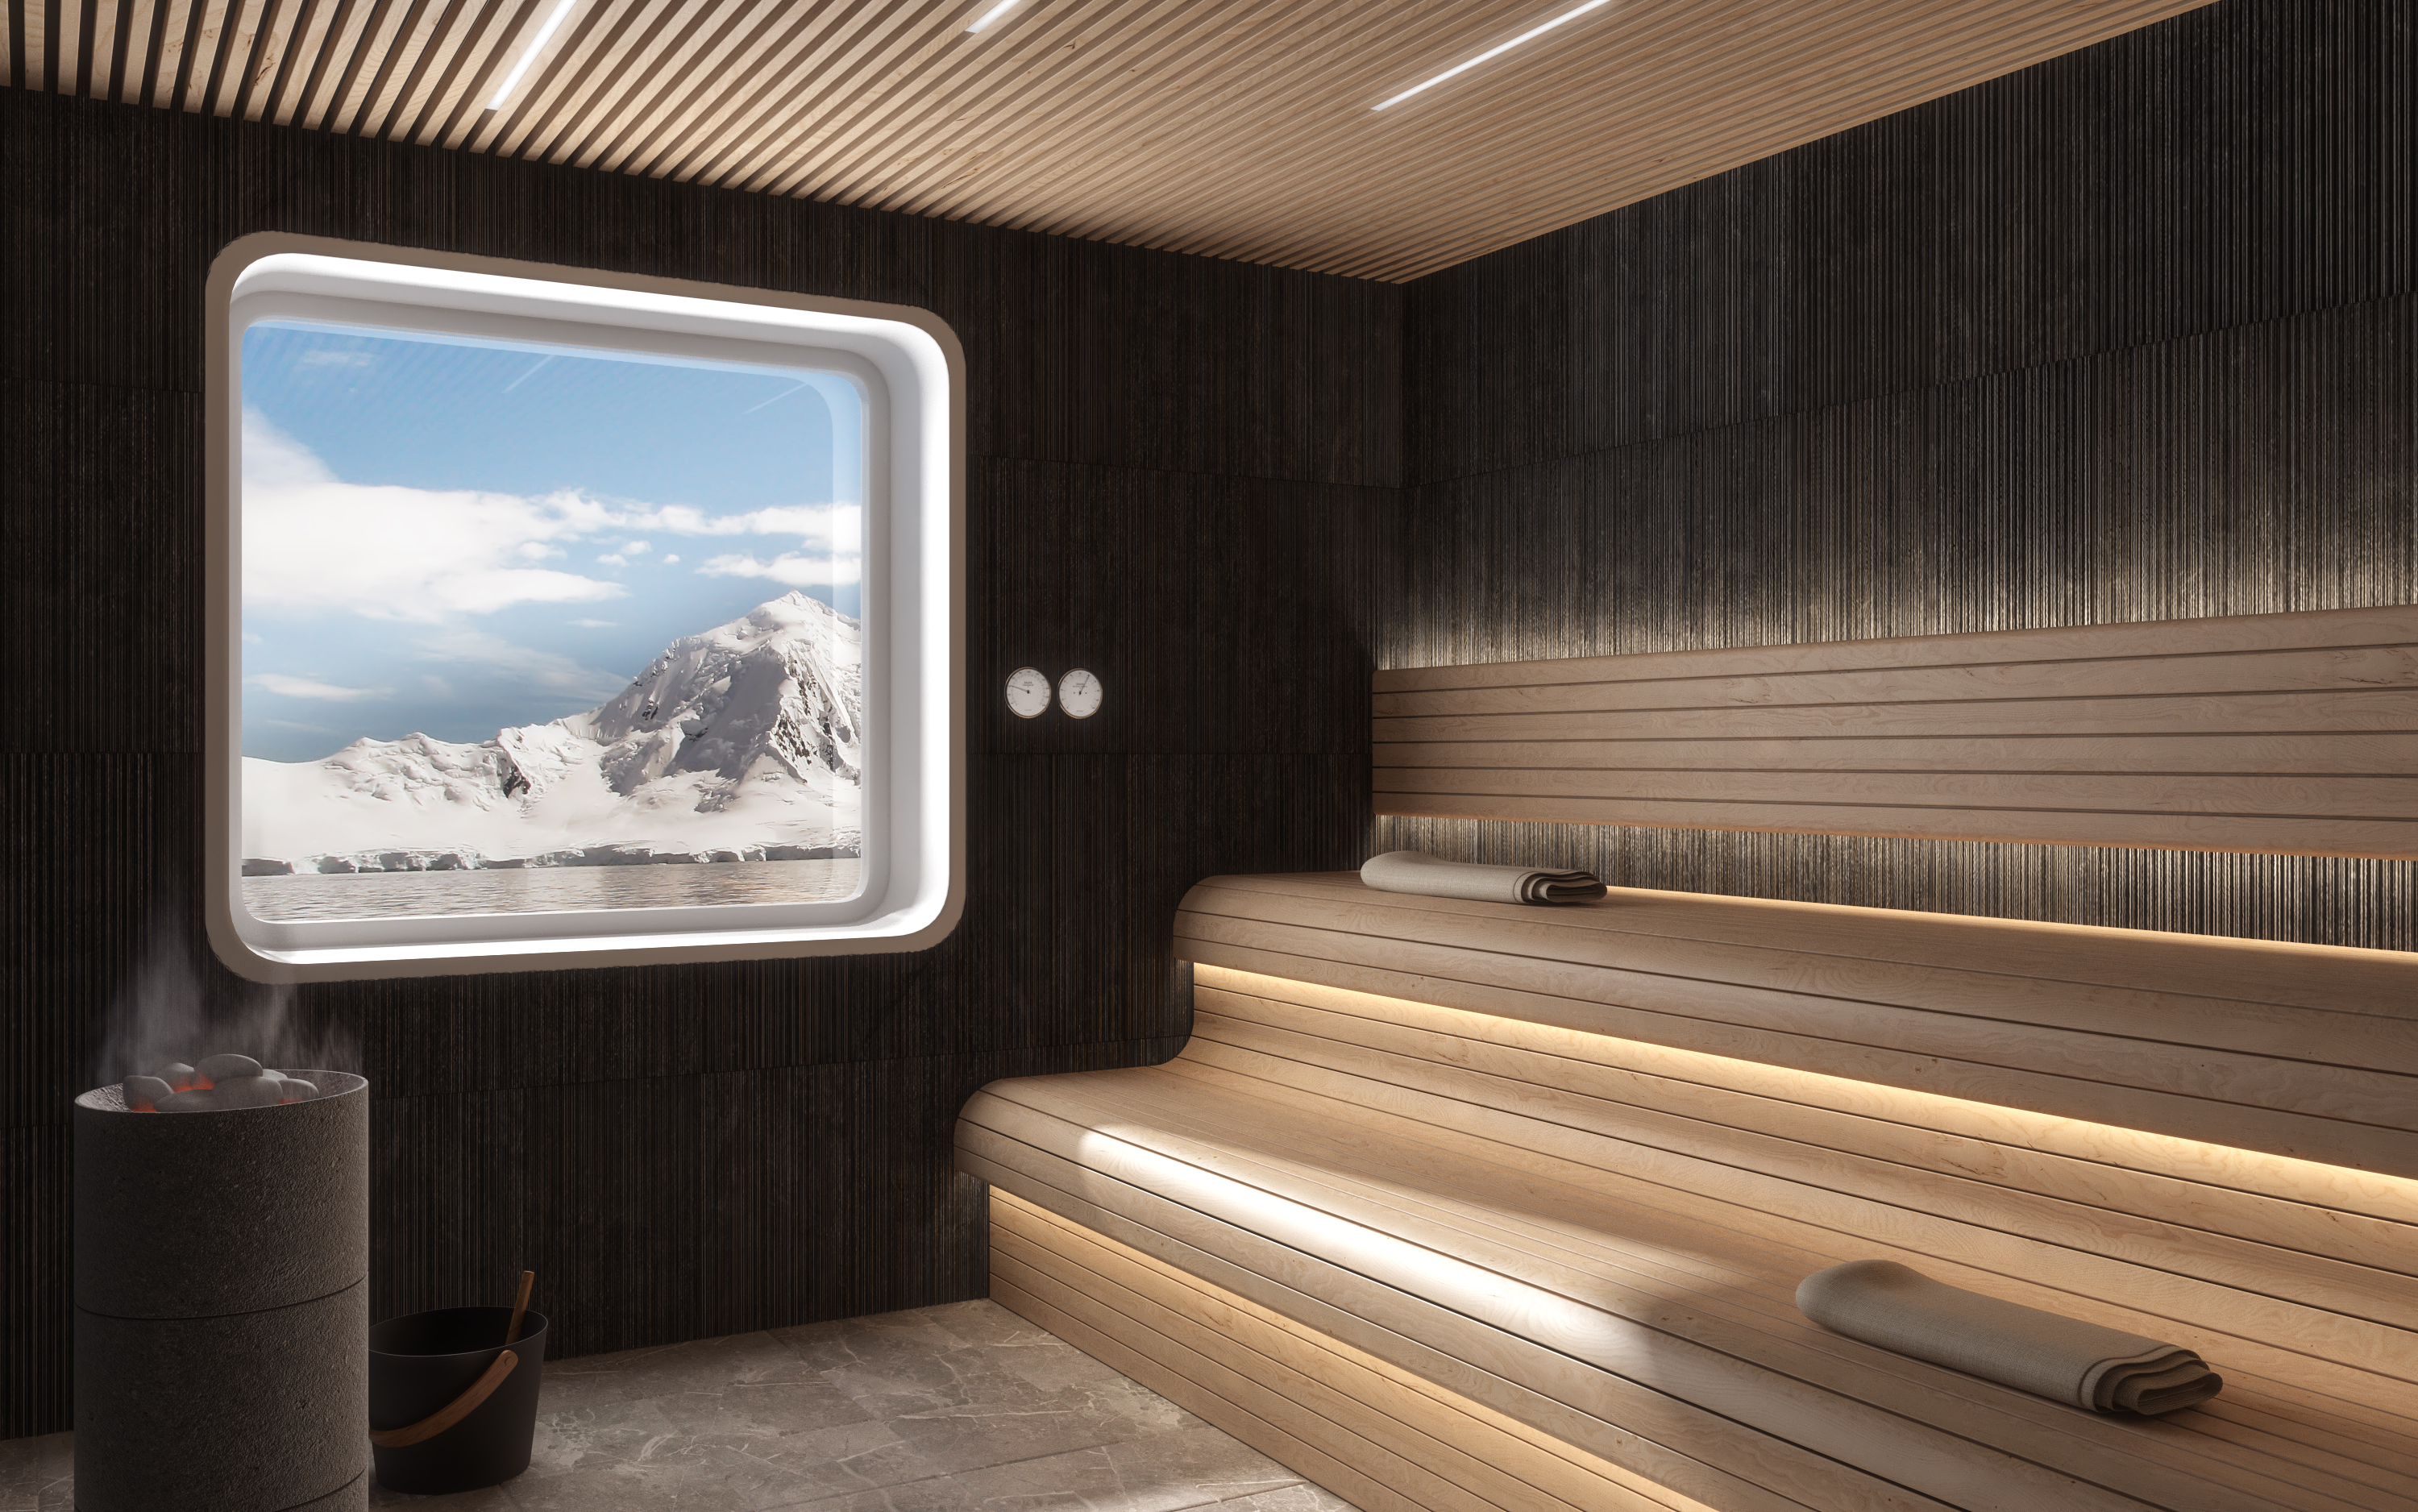 The sauna in Crystal Endeavor's Spa